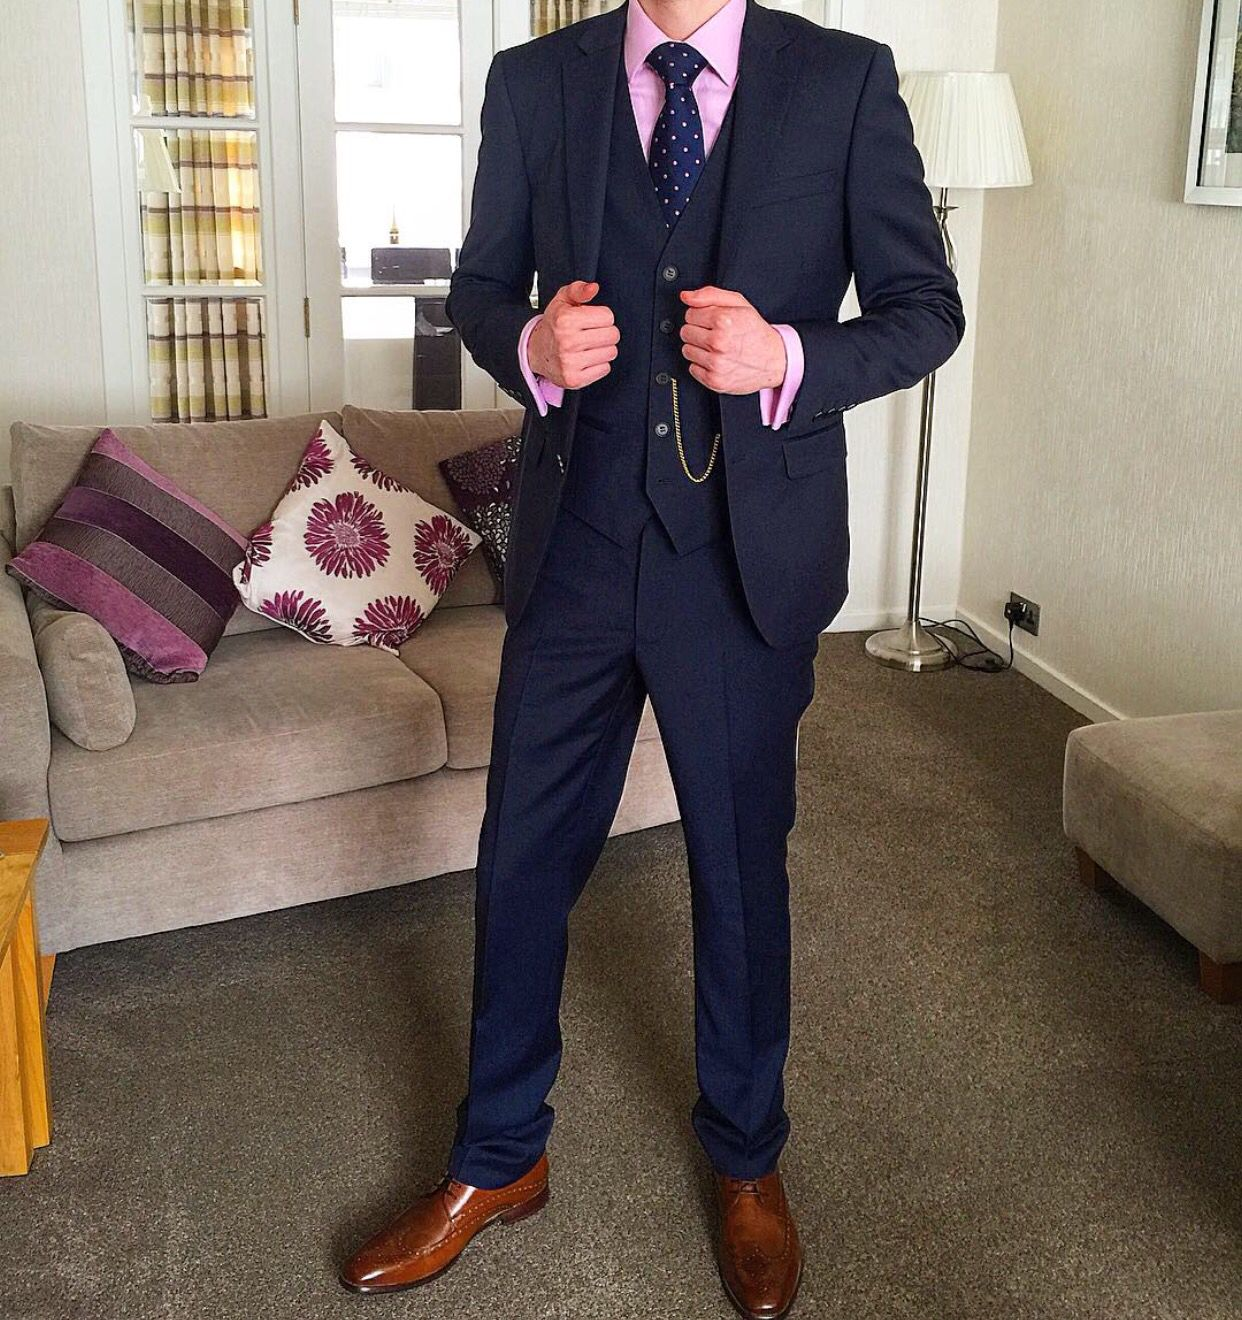 10586ad3 DKNY men's navy suit with pink shirt, navy tie and brown brogues ...